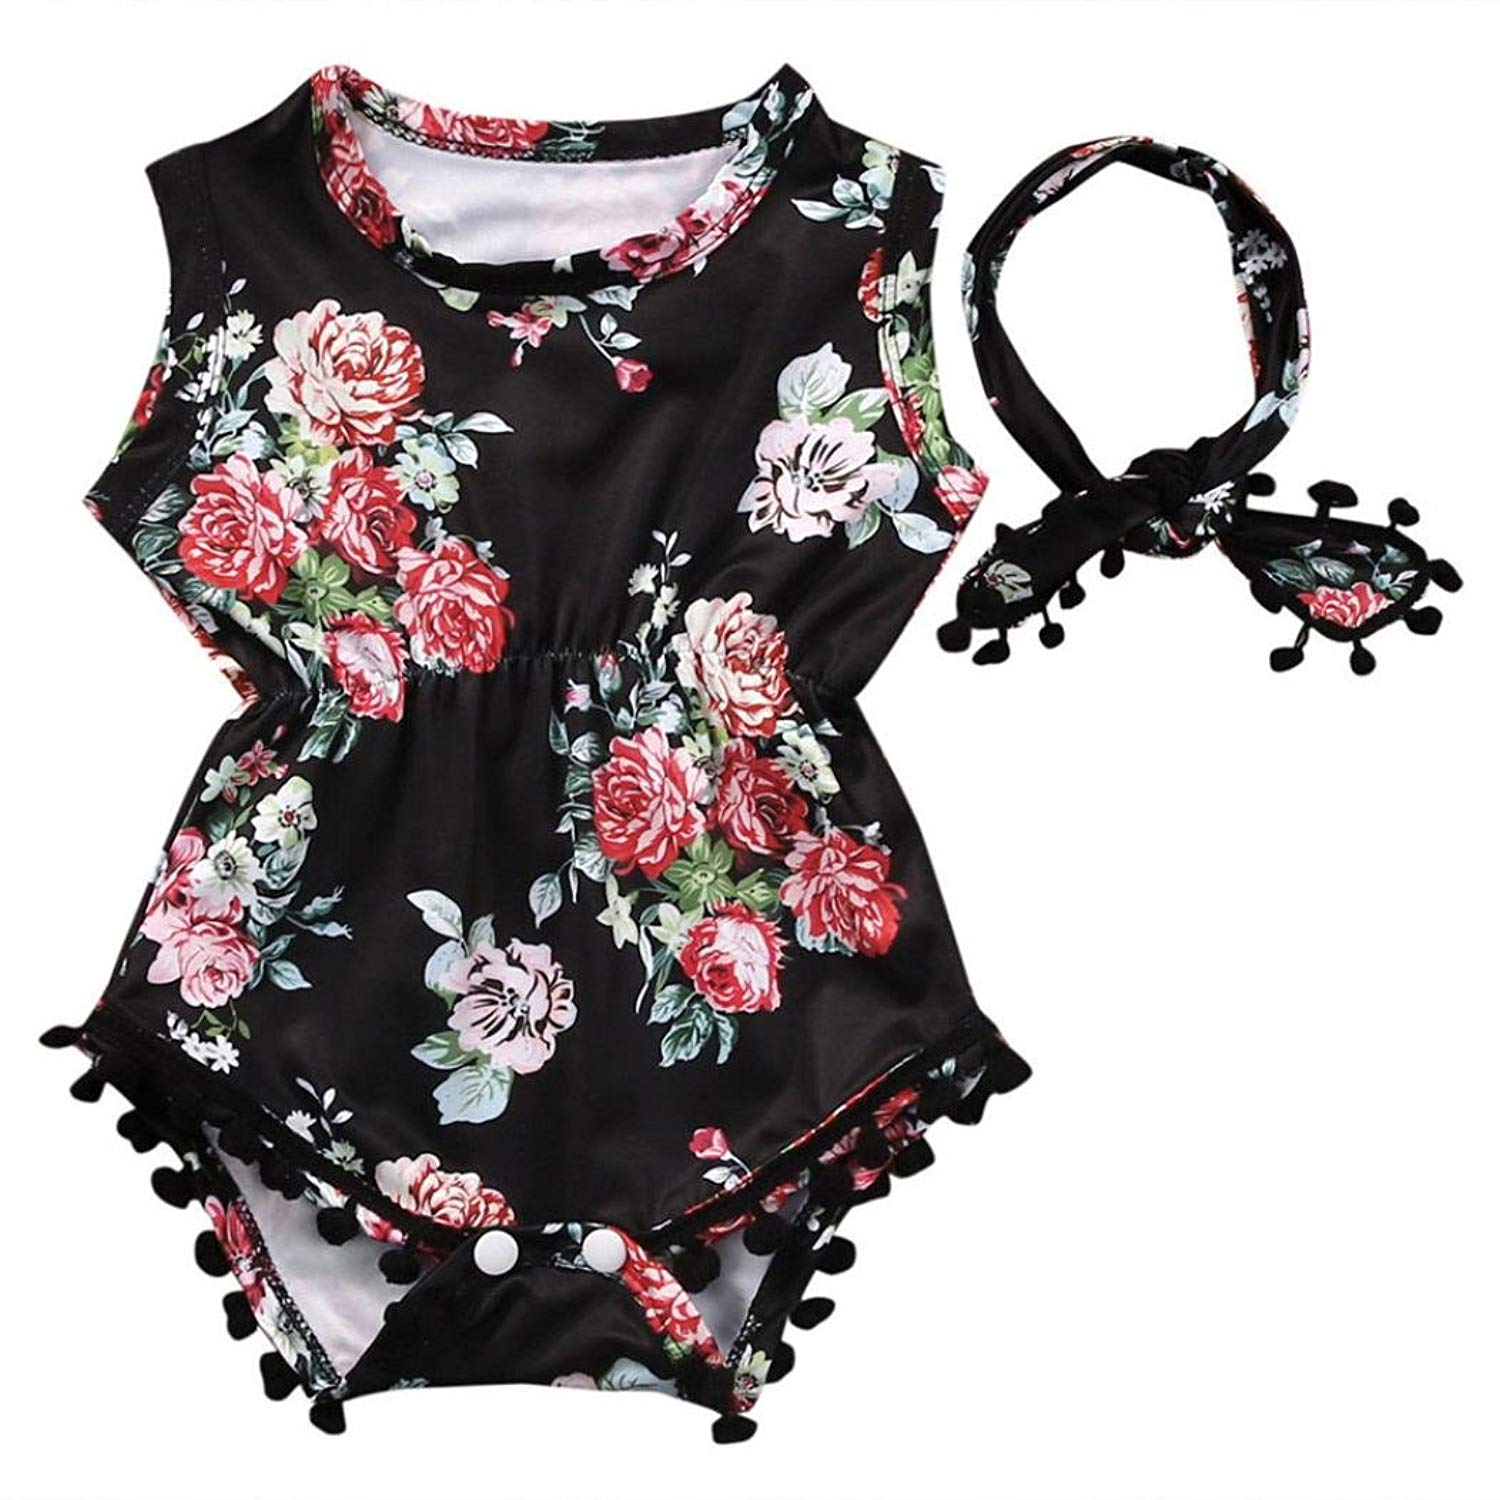 Newborn Infant Toddler Baby Girls Floral Sleeveless Romper Jumpsuit Sunsuit Clothes Set 0-2 Years